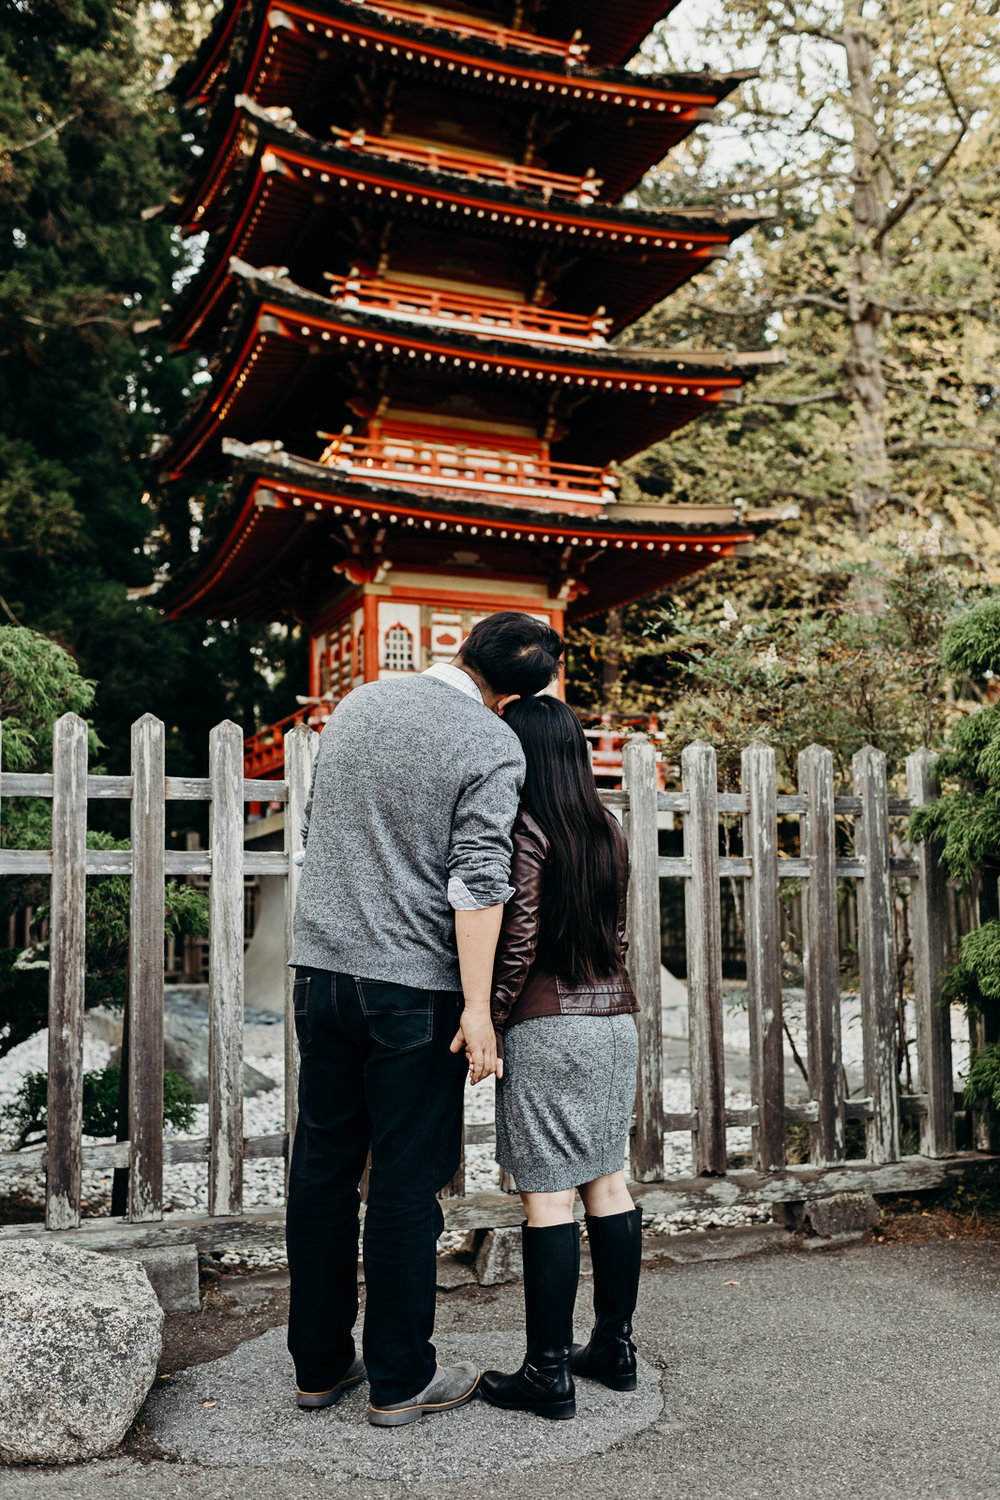 Engaged couple holds hands and looks at a red Thai pavilion.